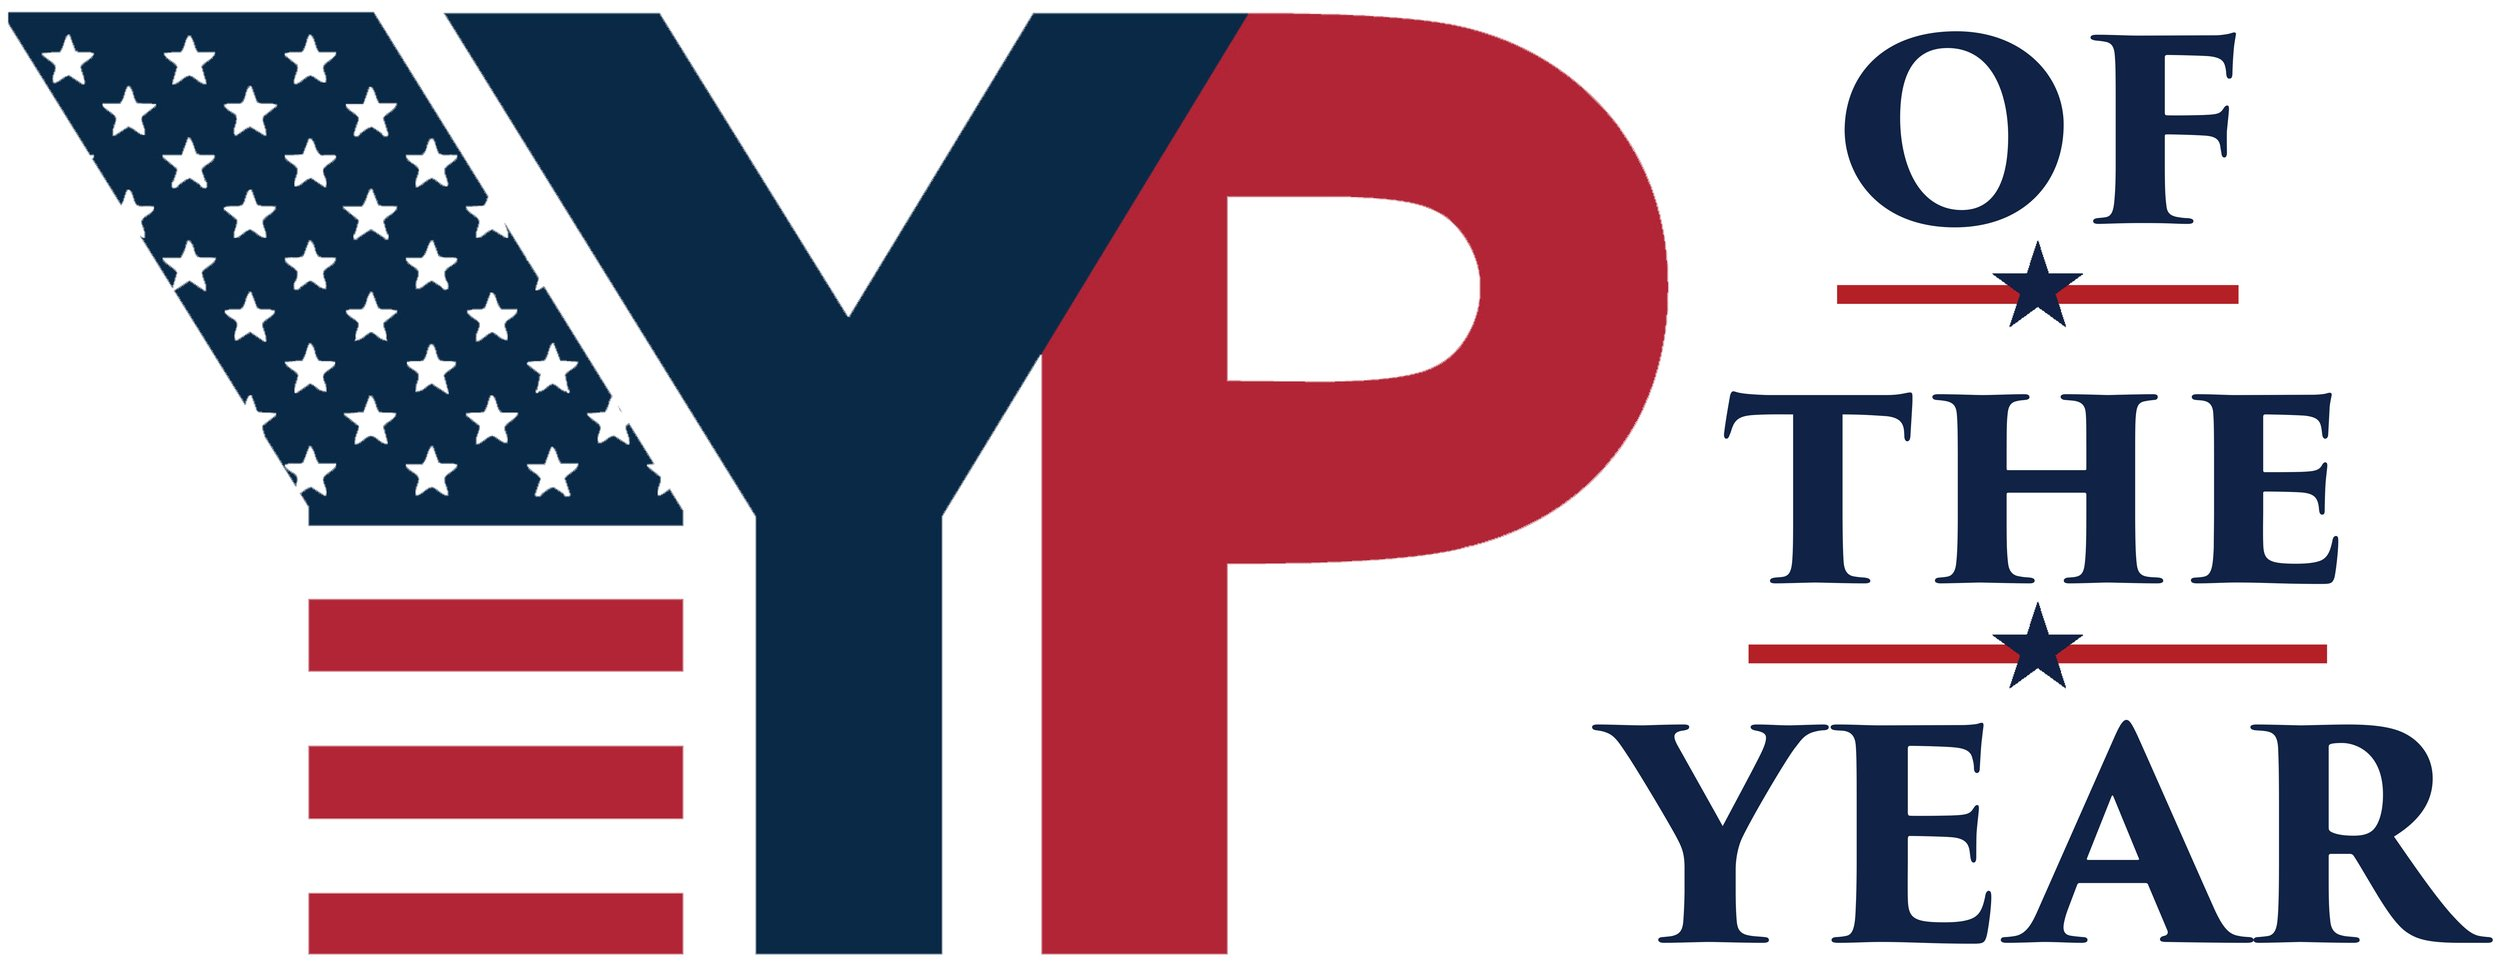 YP OF THE YEAR LOGO Reduced Size.jpg